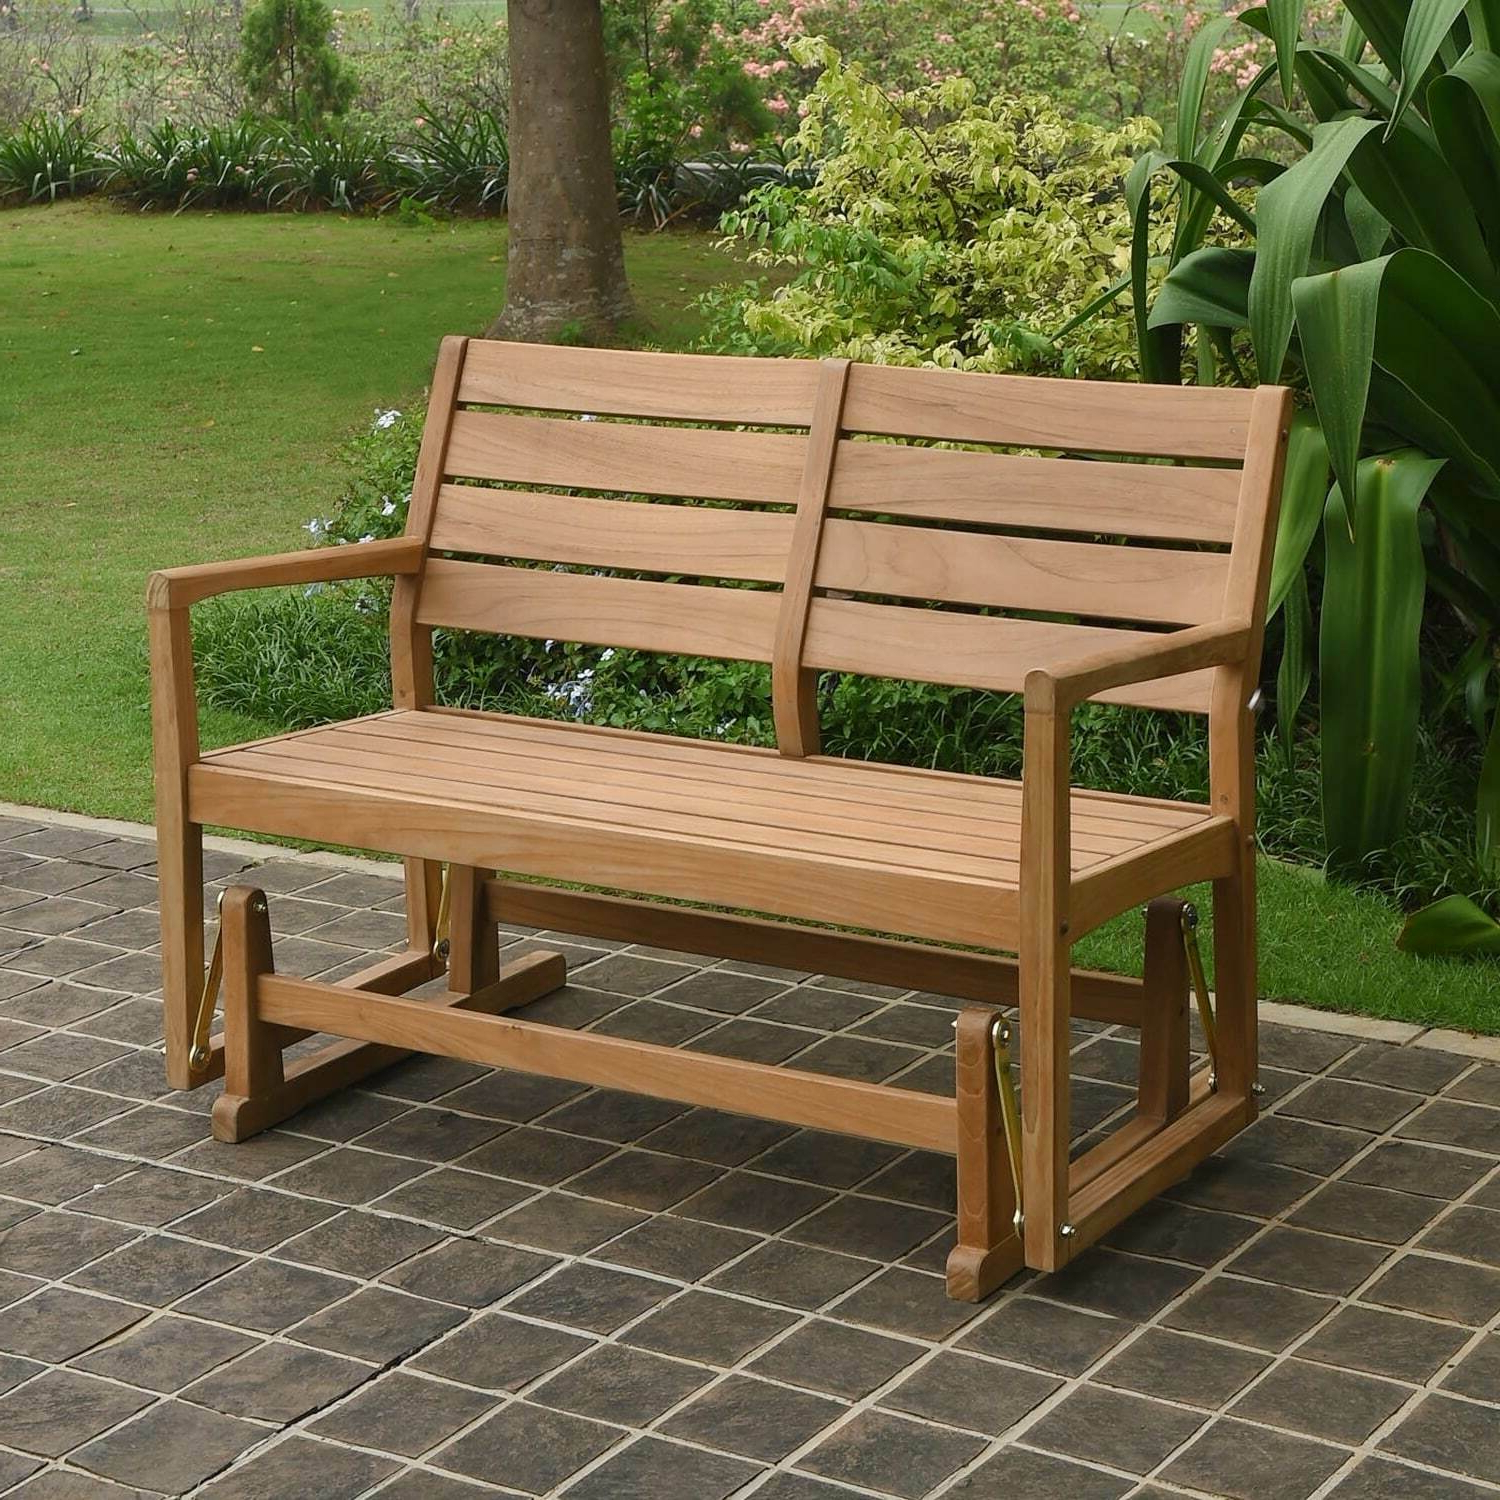 Teak Outdoor Glider Benches Pertaining To Well Known Cambridge Casual Andrea Teak Glider Bench Tan Single (View 9 of 25)